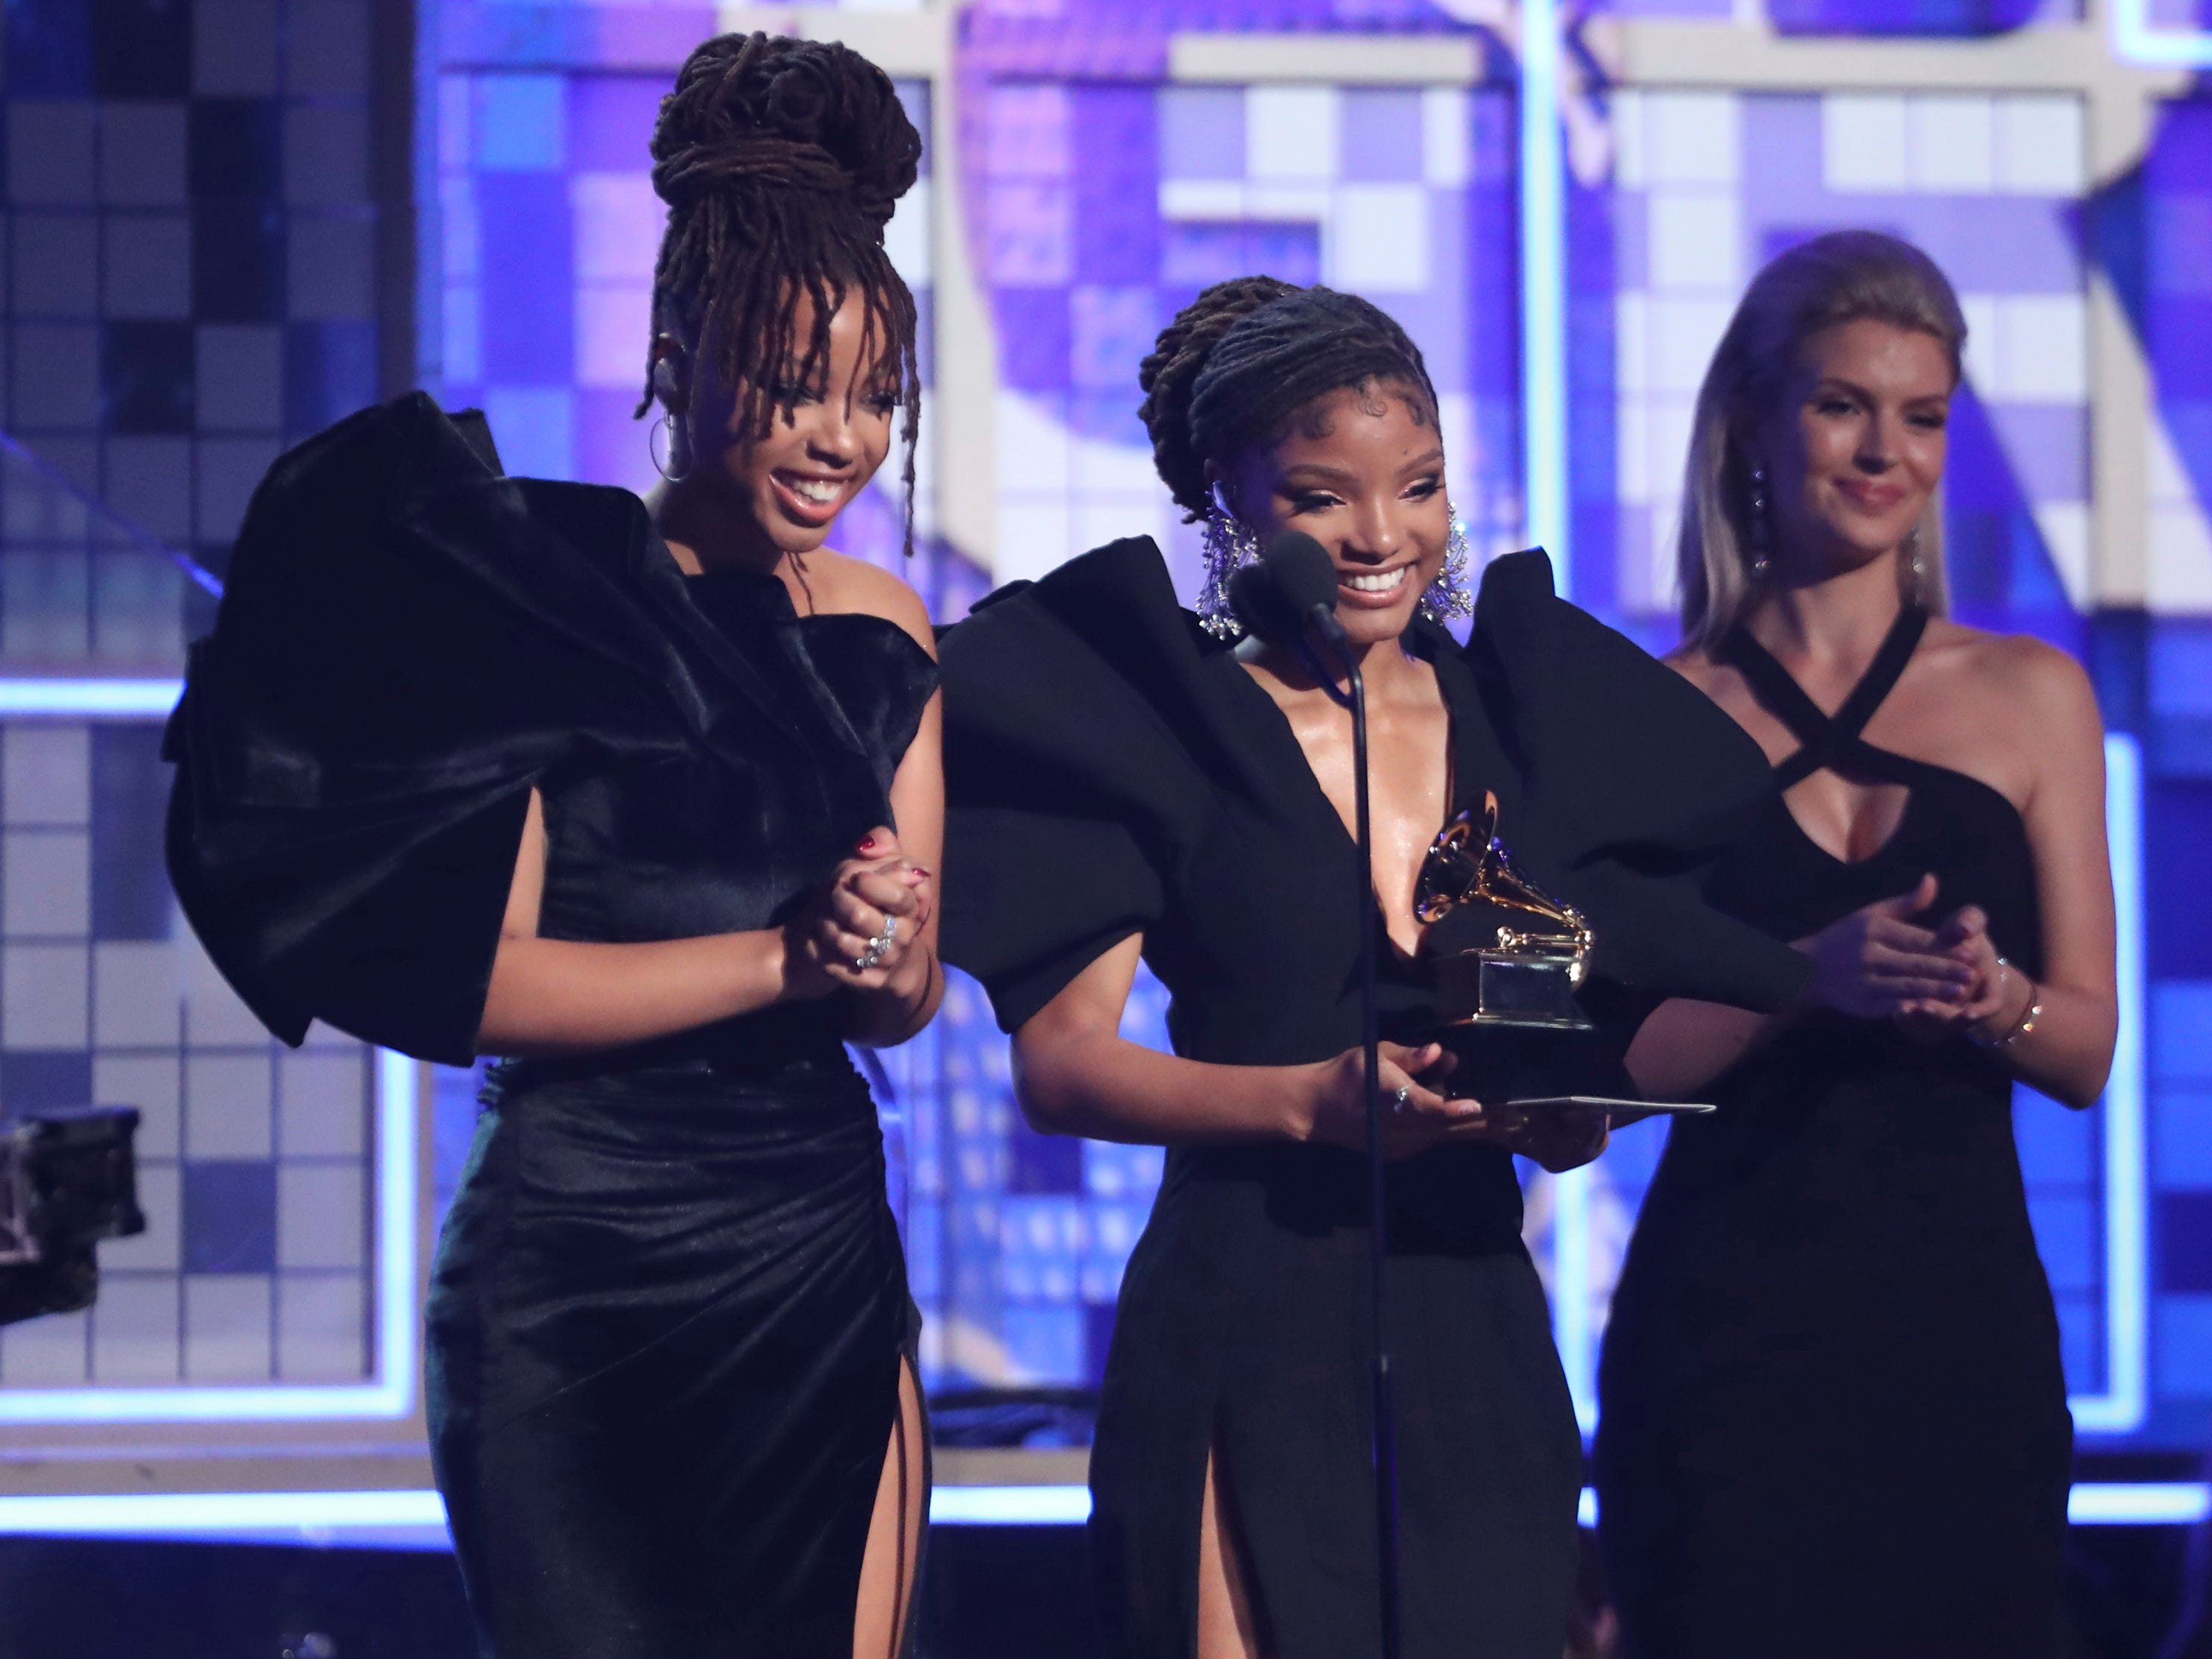 Halle Bailey, left, and Chloe Bailey, of Chloe X Halle, present the award for best rap album at the 61st annual Grammy Awards on Sunday, Feb. 10, 2019, in Los Angeles.